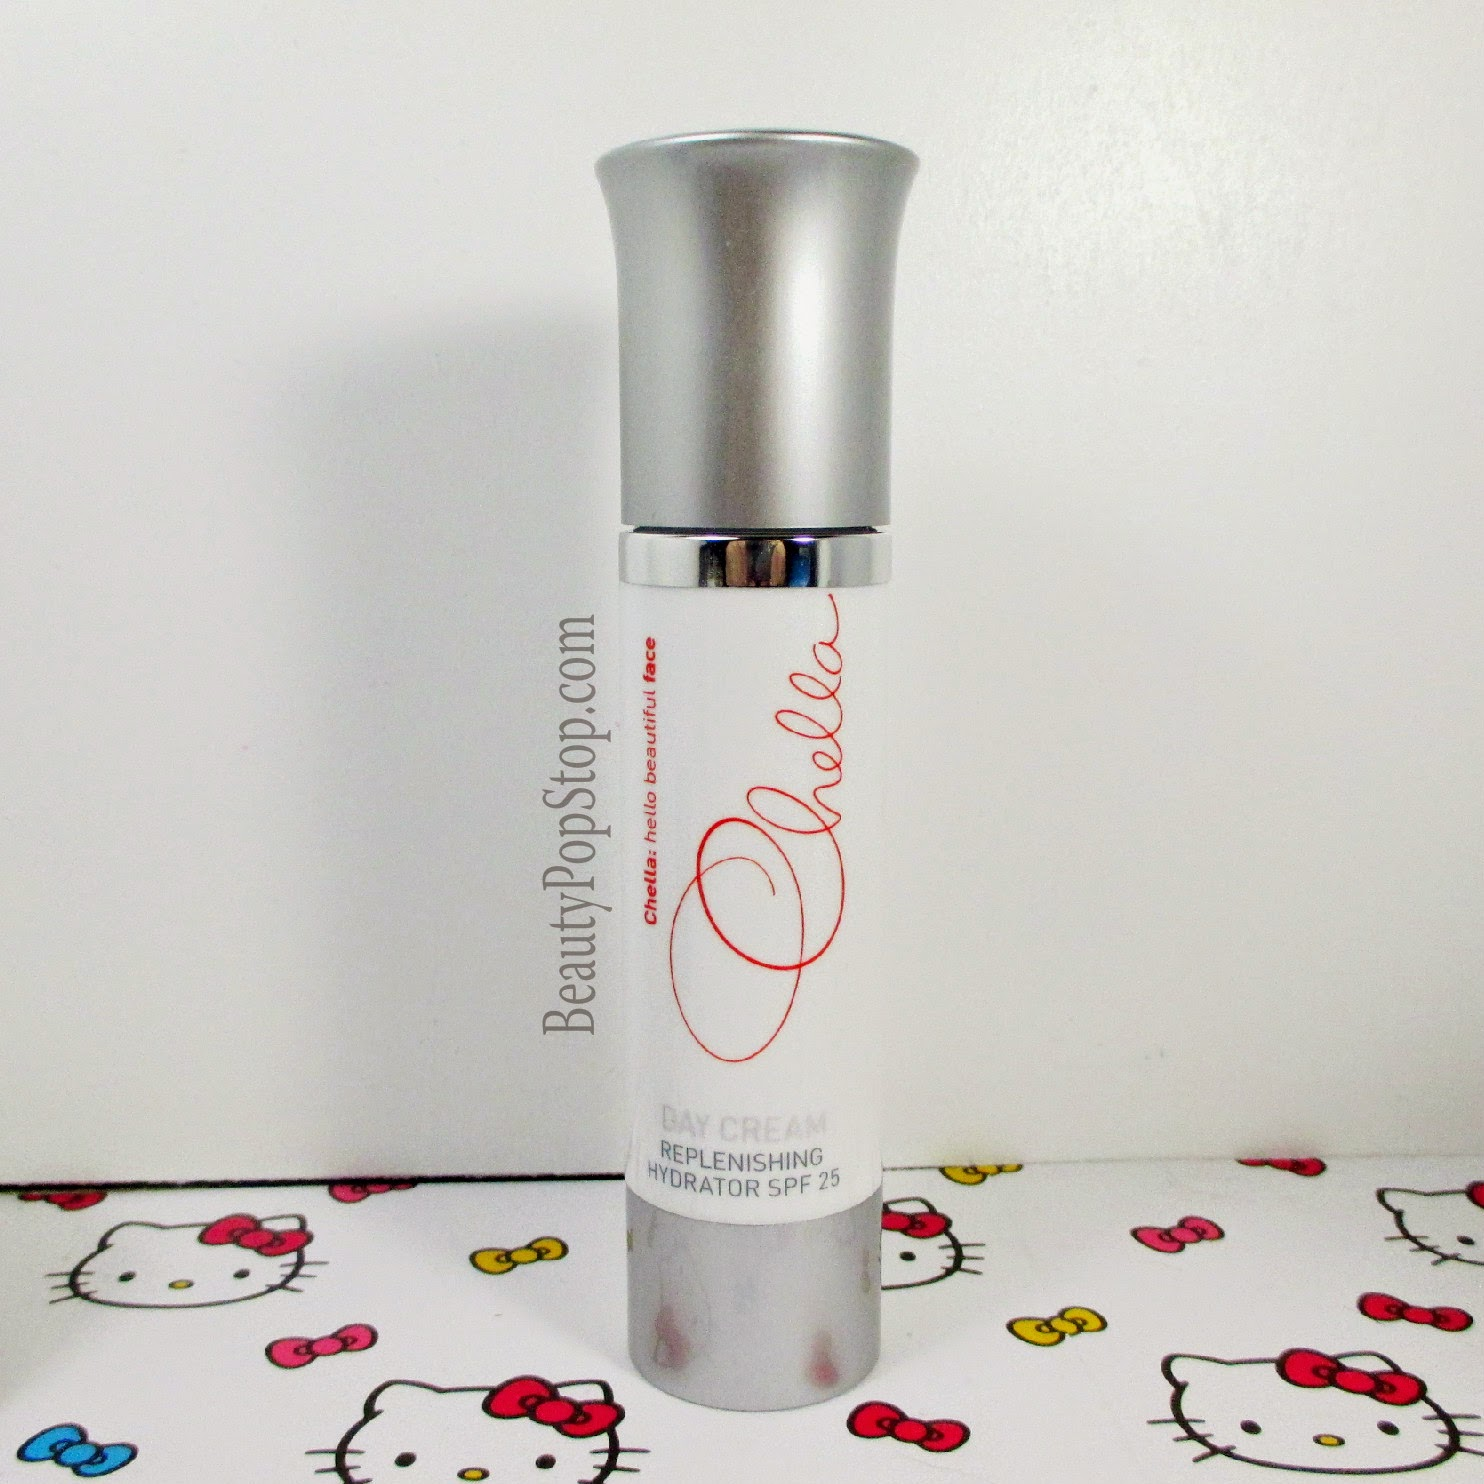 Chella day cream replenishing hydrator spf 25 review